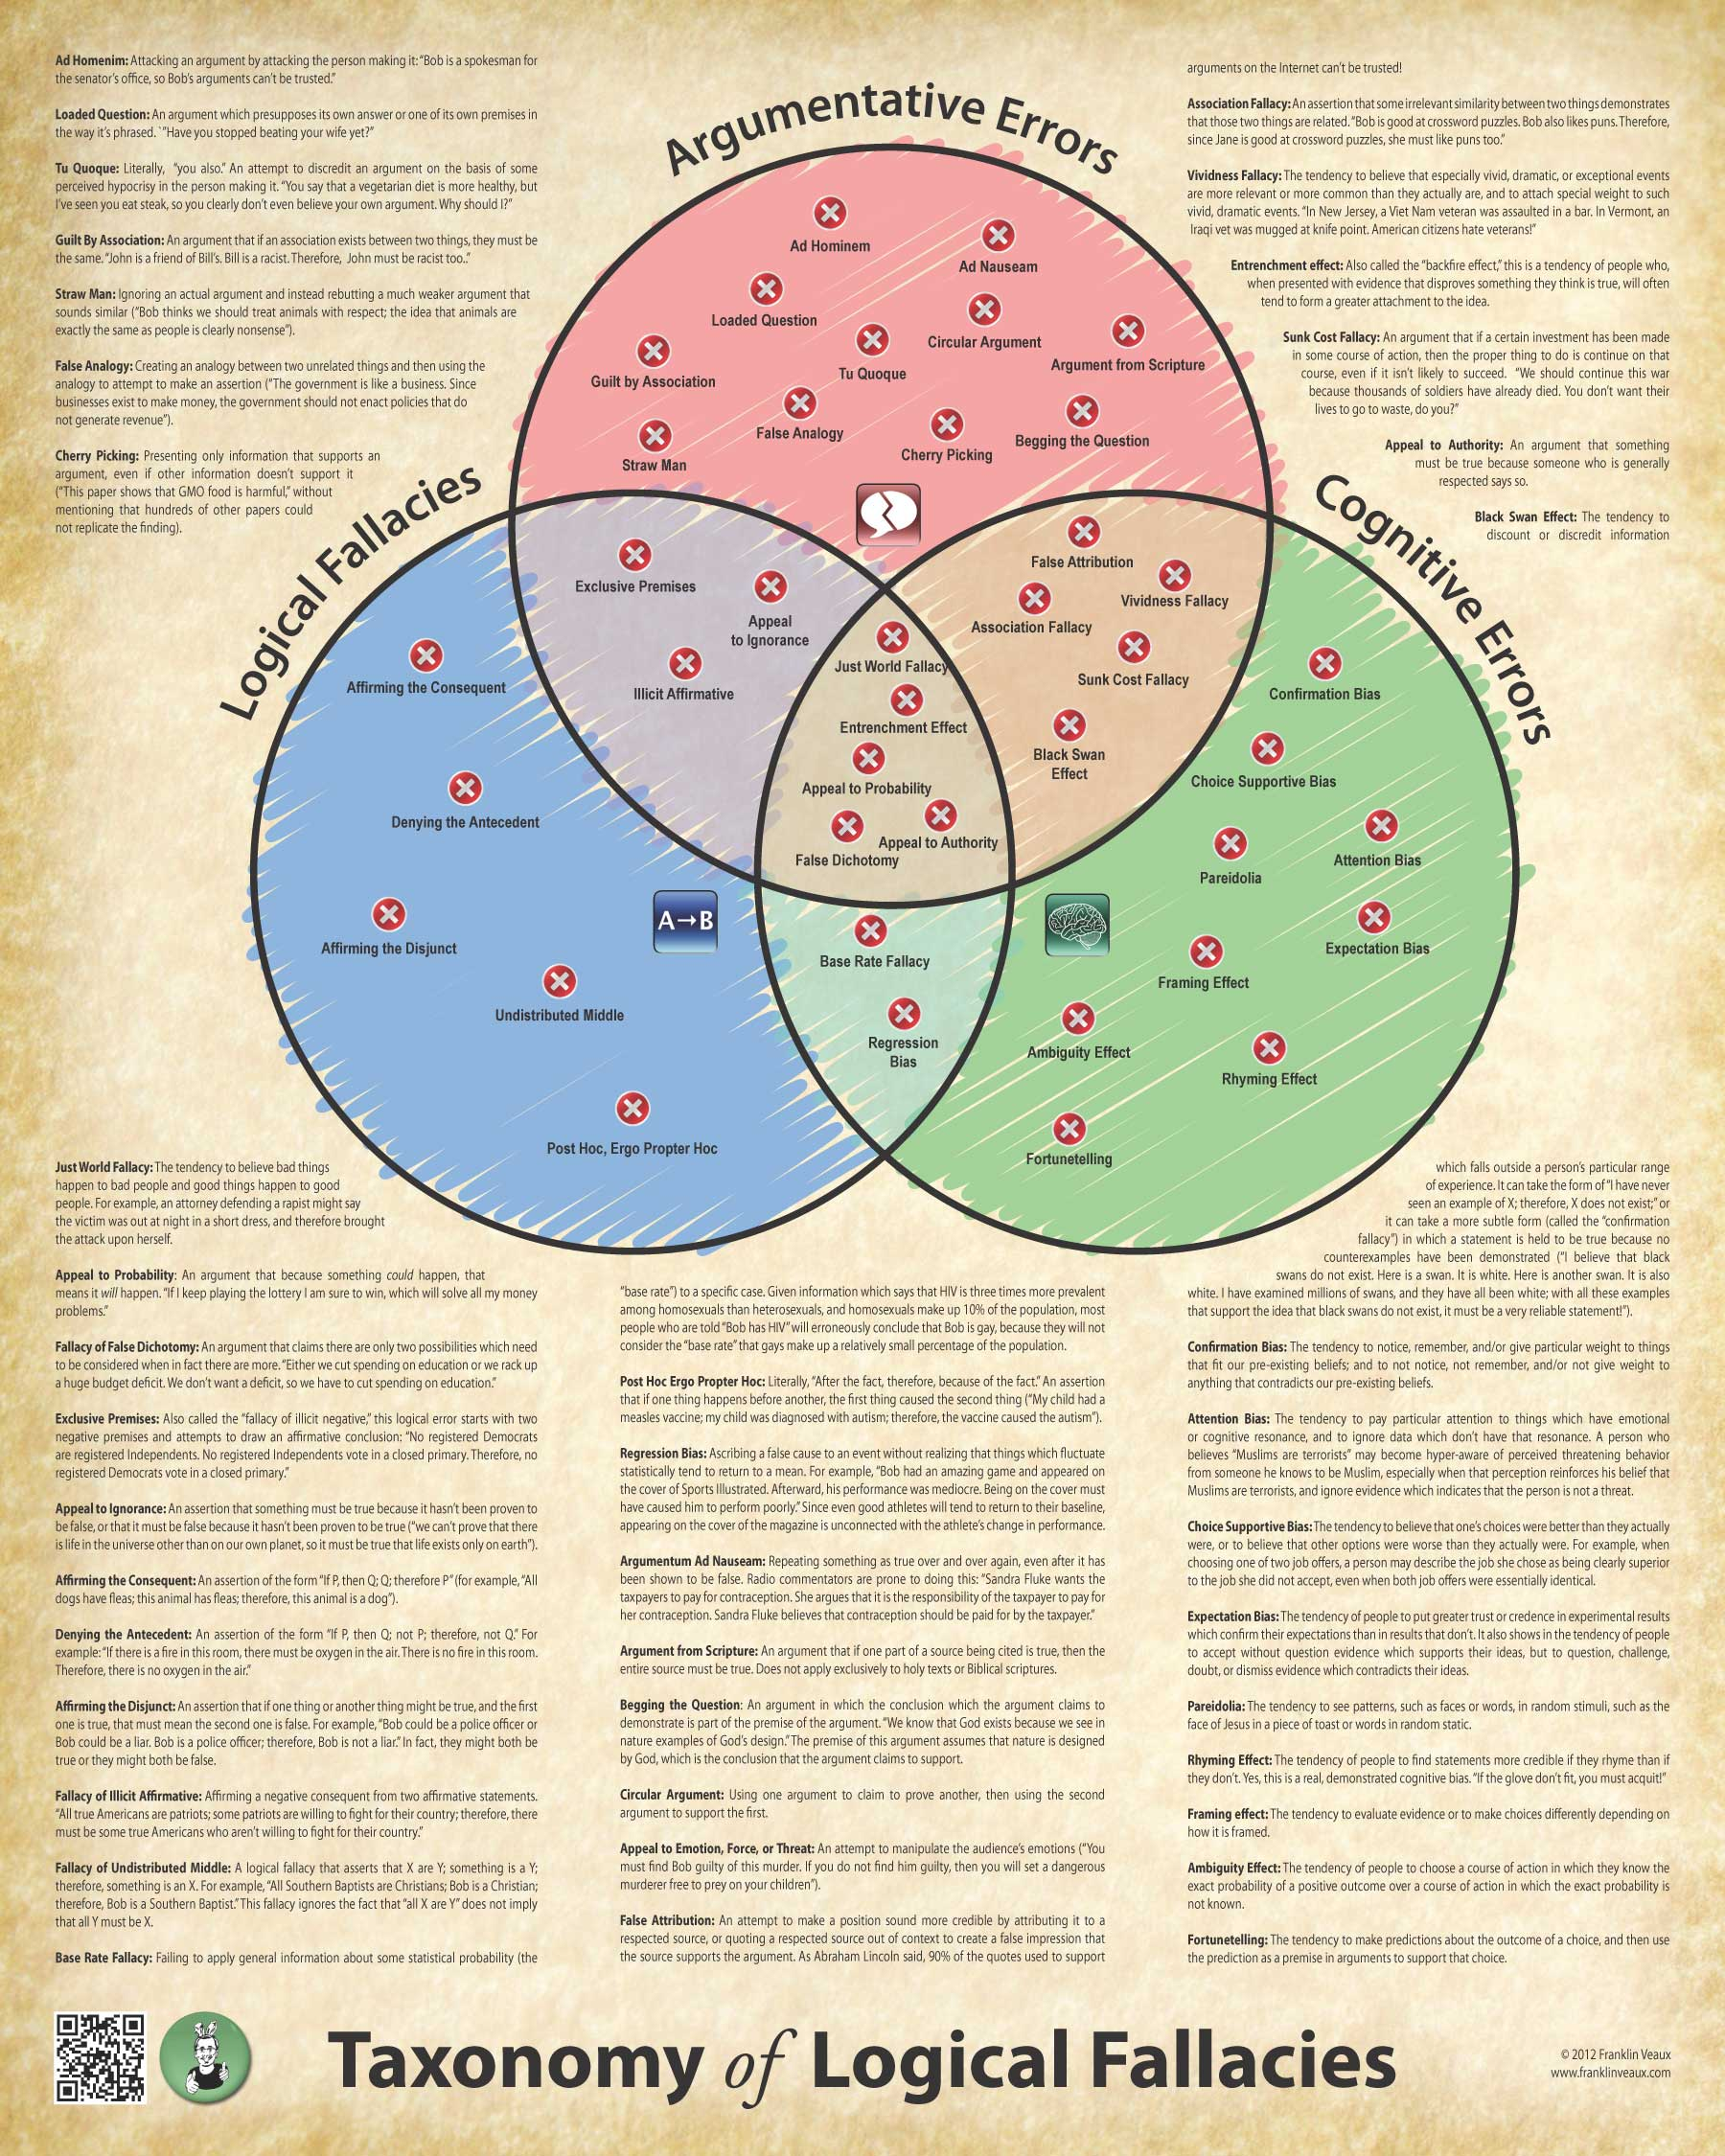 franklin veaux s journal by popular demand the taxonomy of logical fallacies in poster form